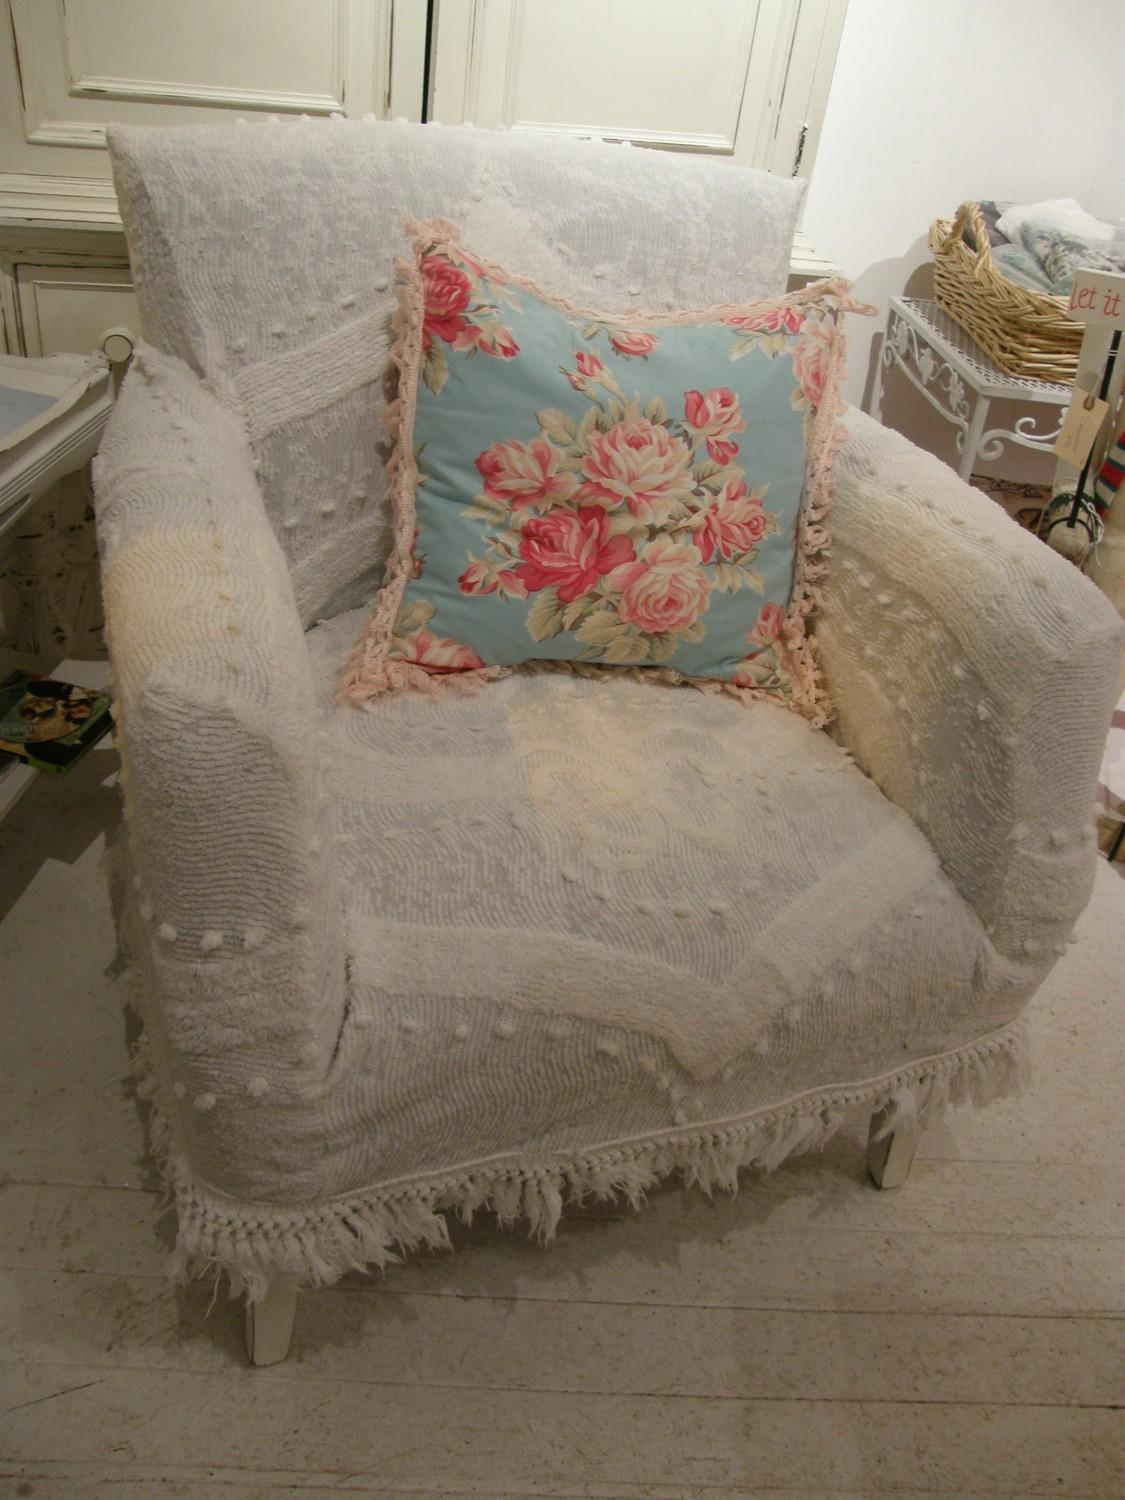 chic chair covers birmingham lucite folding chairs 20 photos shabby slipcovers sofa ideas